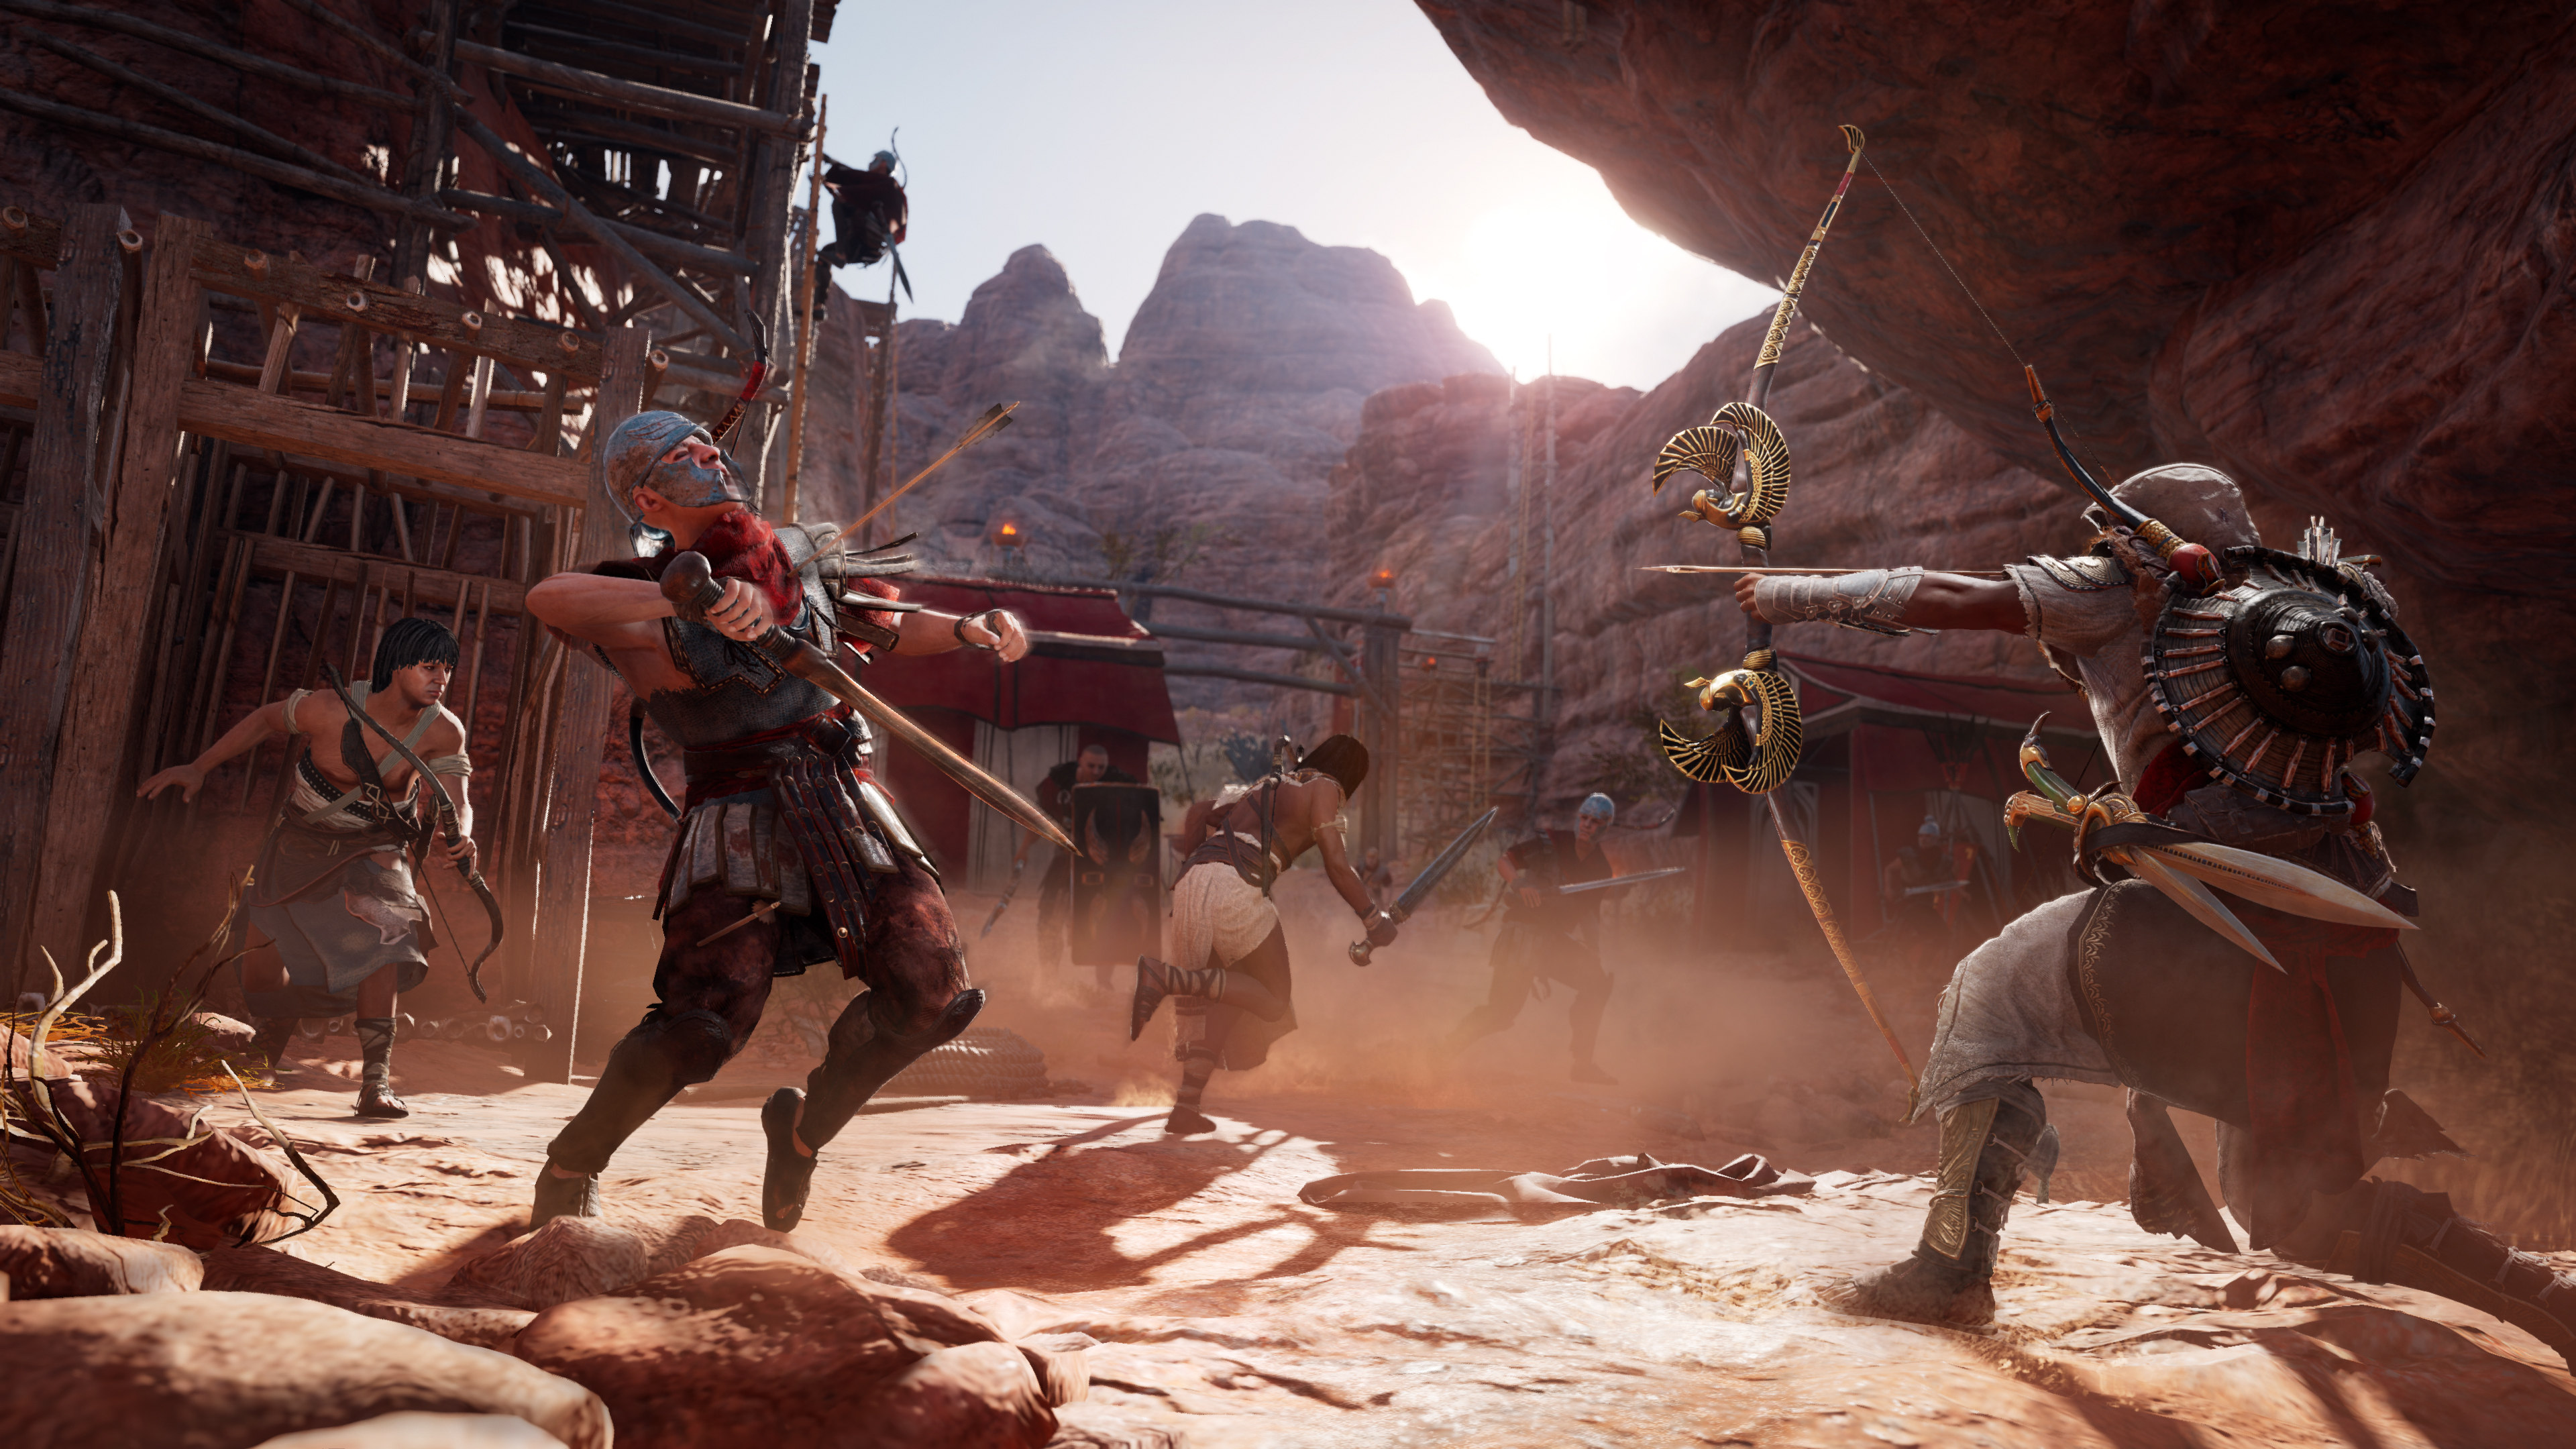 Assassin's Creed: Origins Patch Adds New Game Plus, Discovery Tour and More